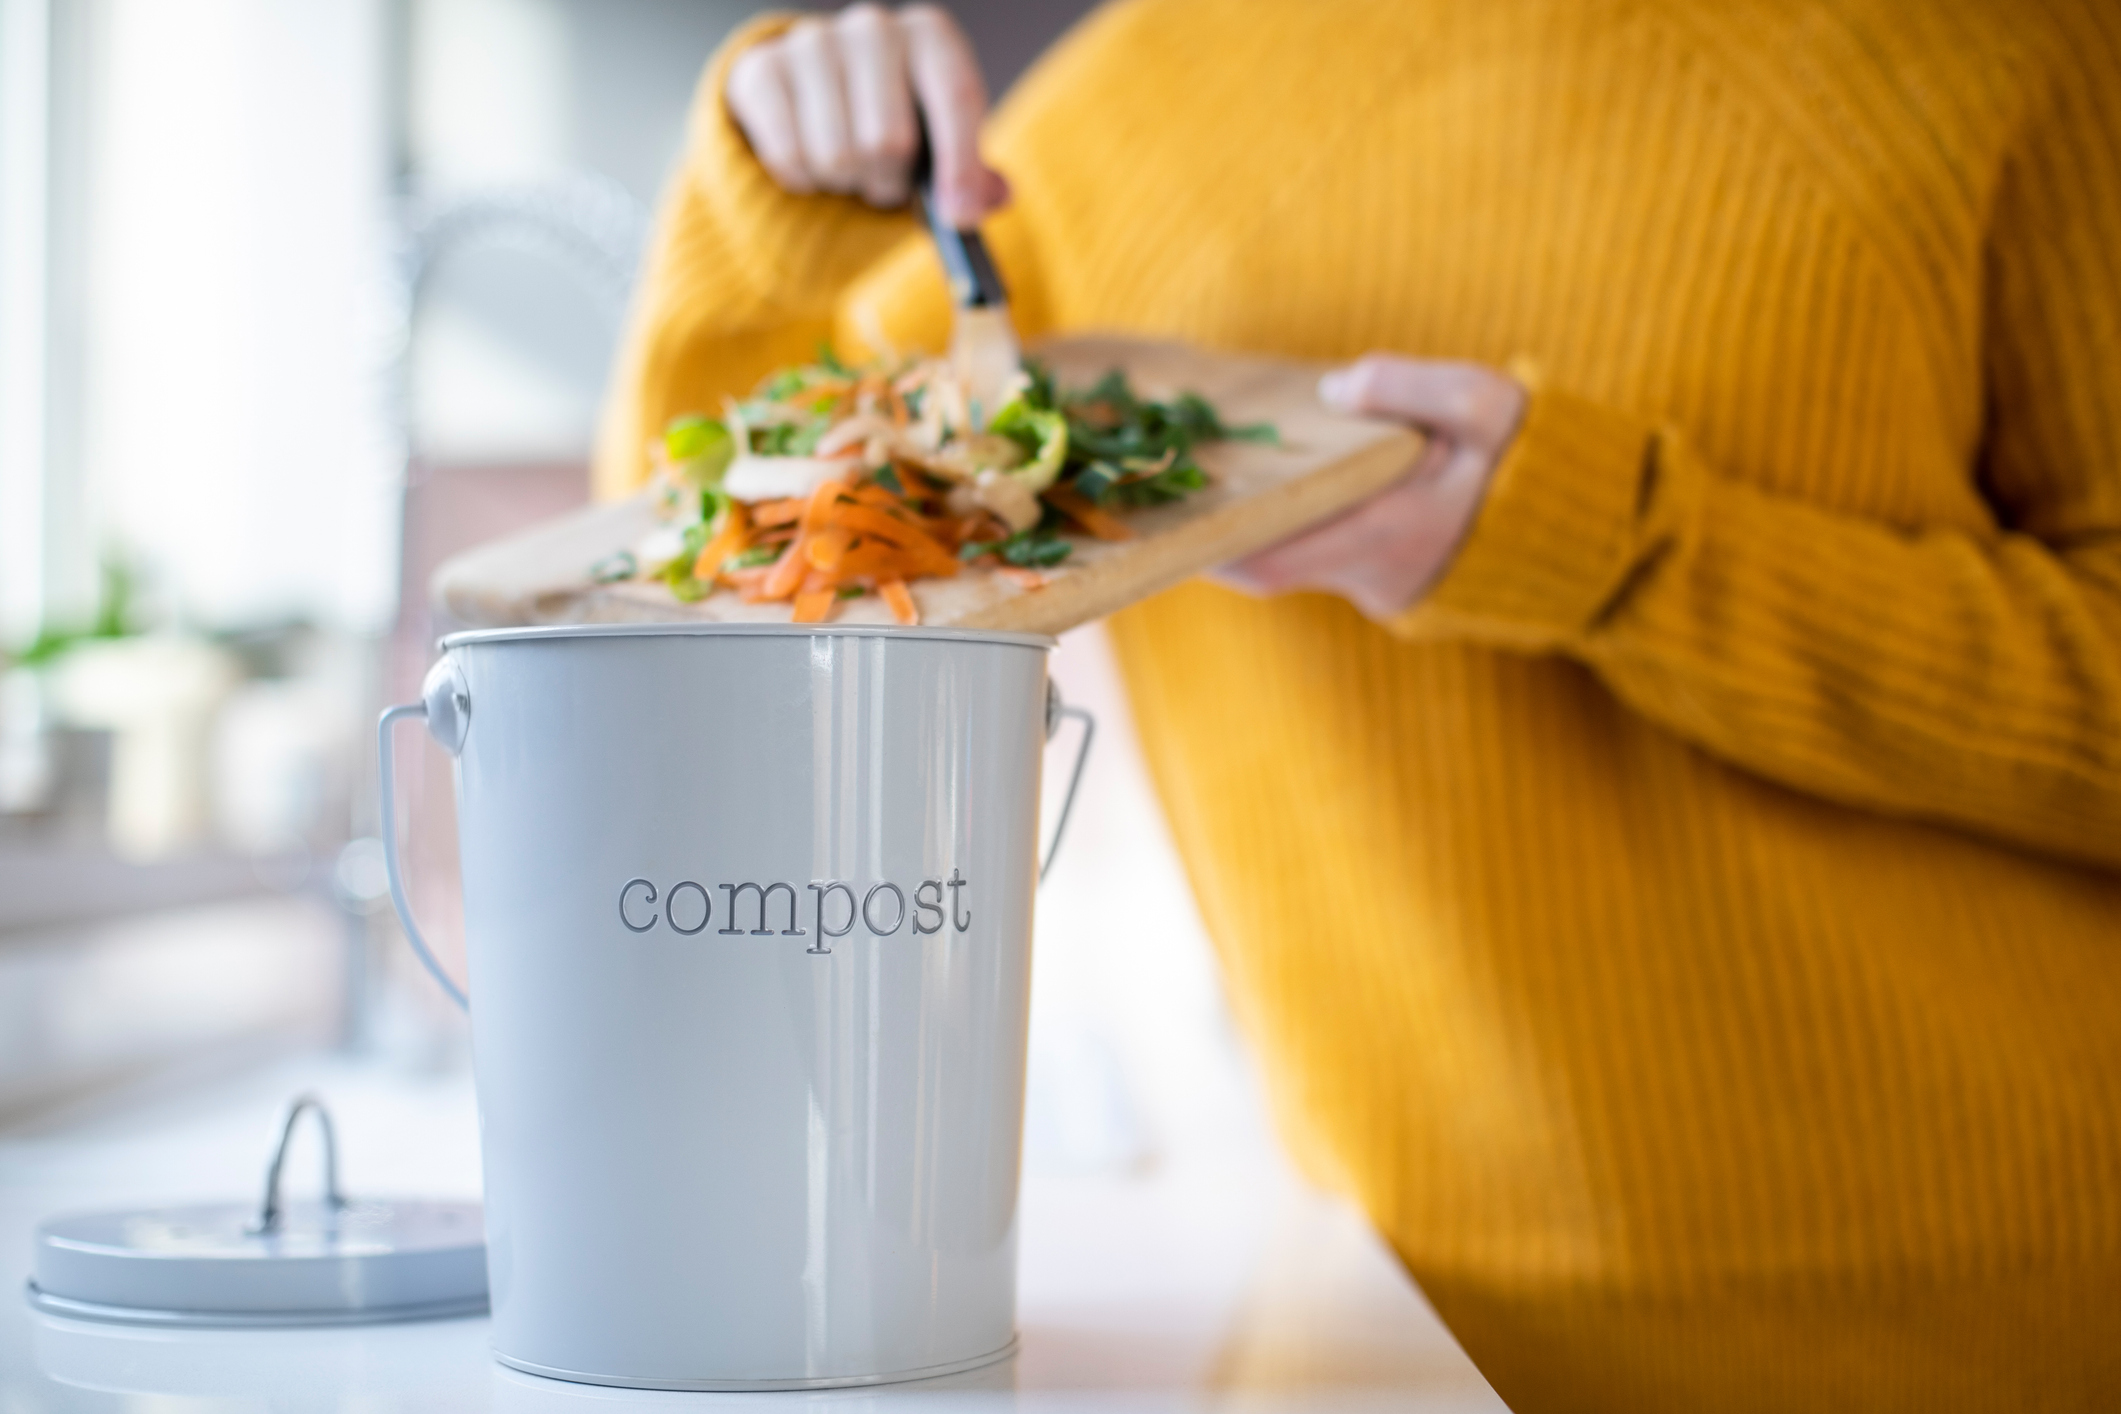 disposing of food waste into compost bin